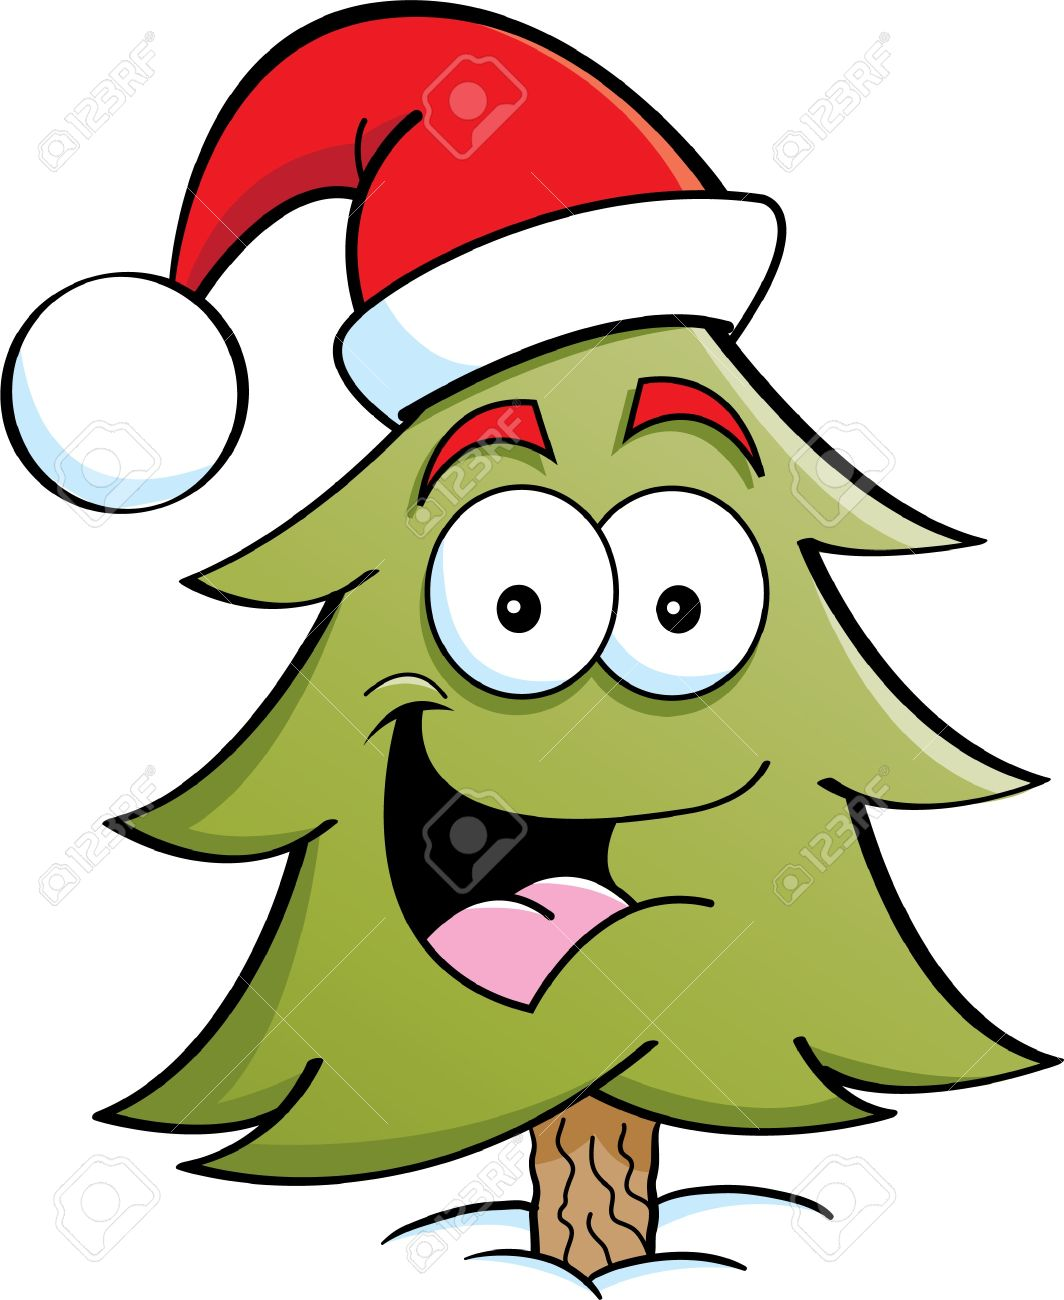 Cartoon illustration of a pine tree wearing a Santa hat Stock Vector - 15259451